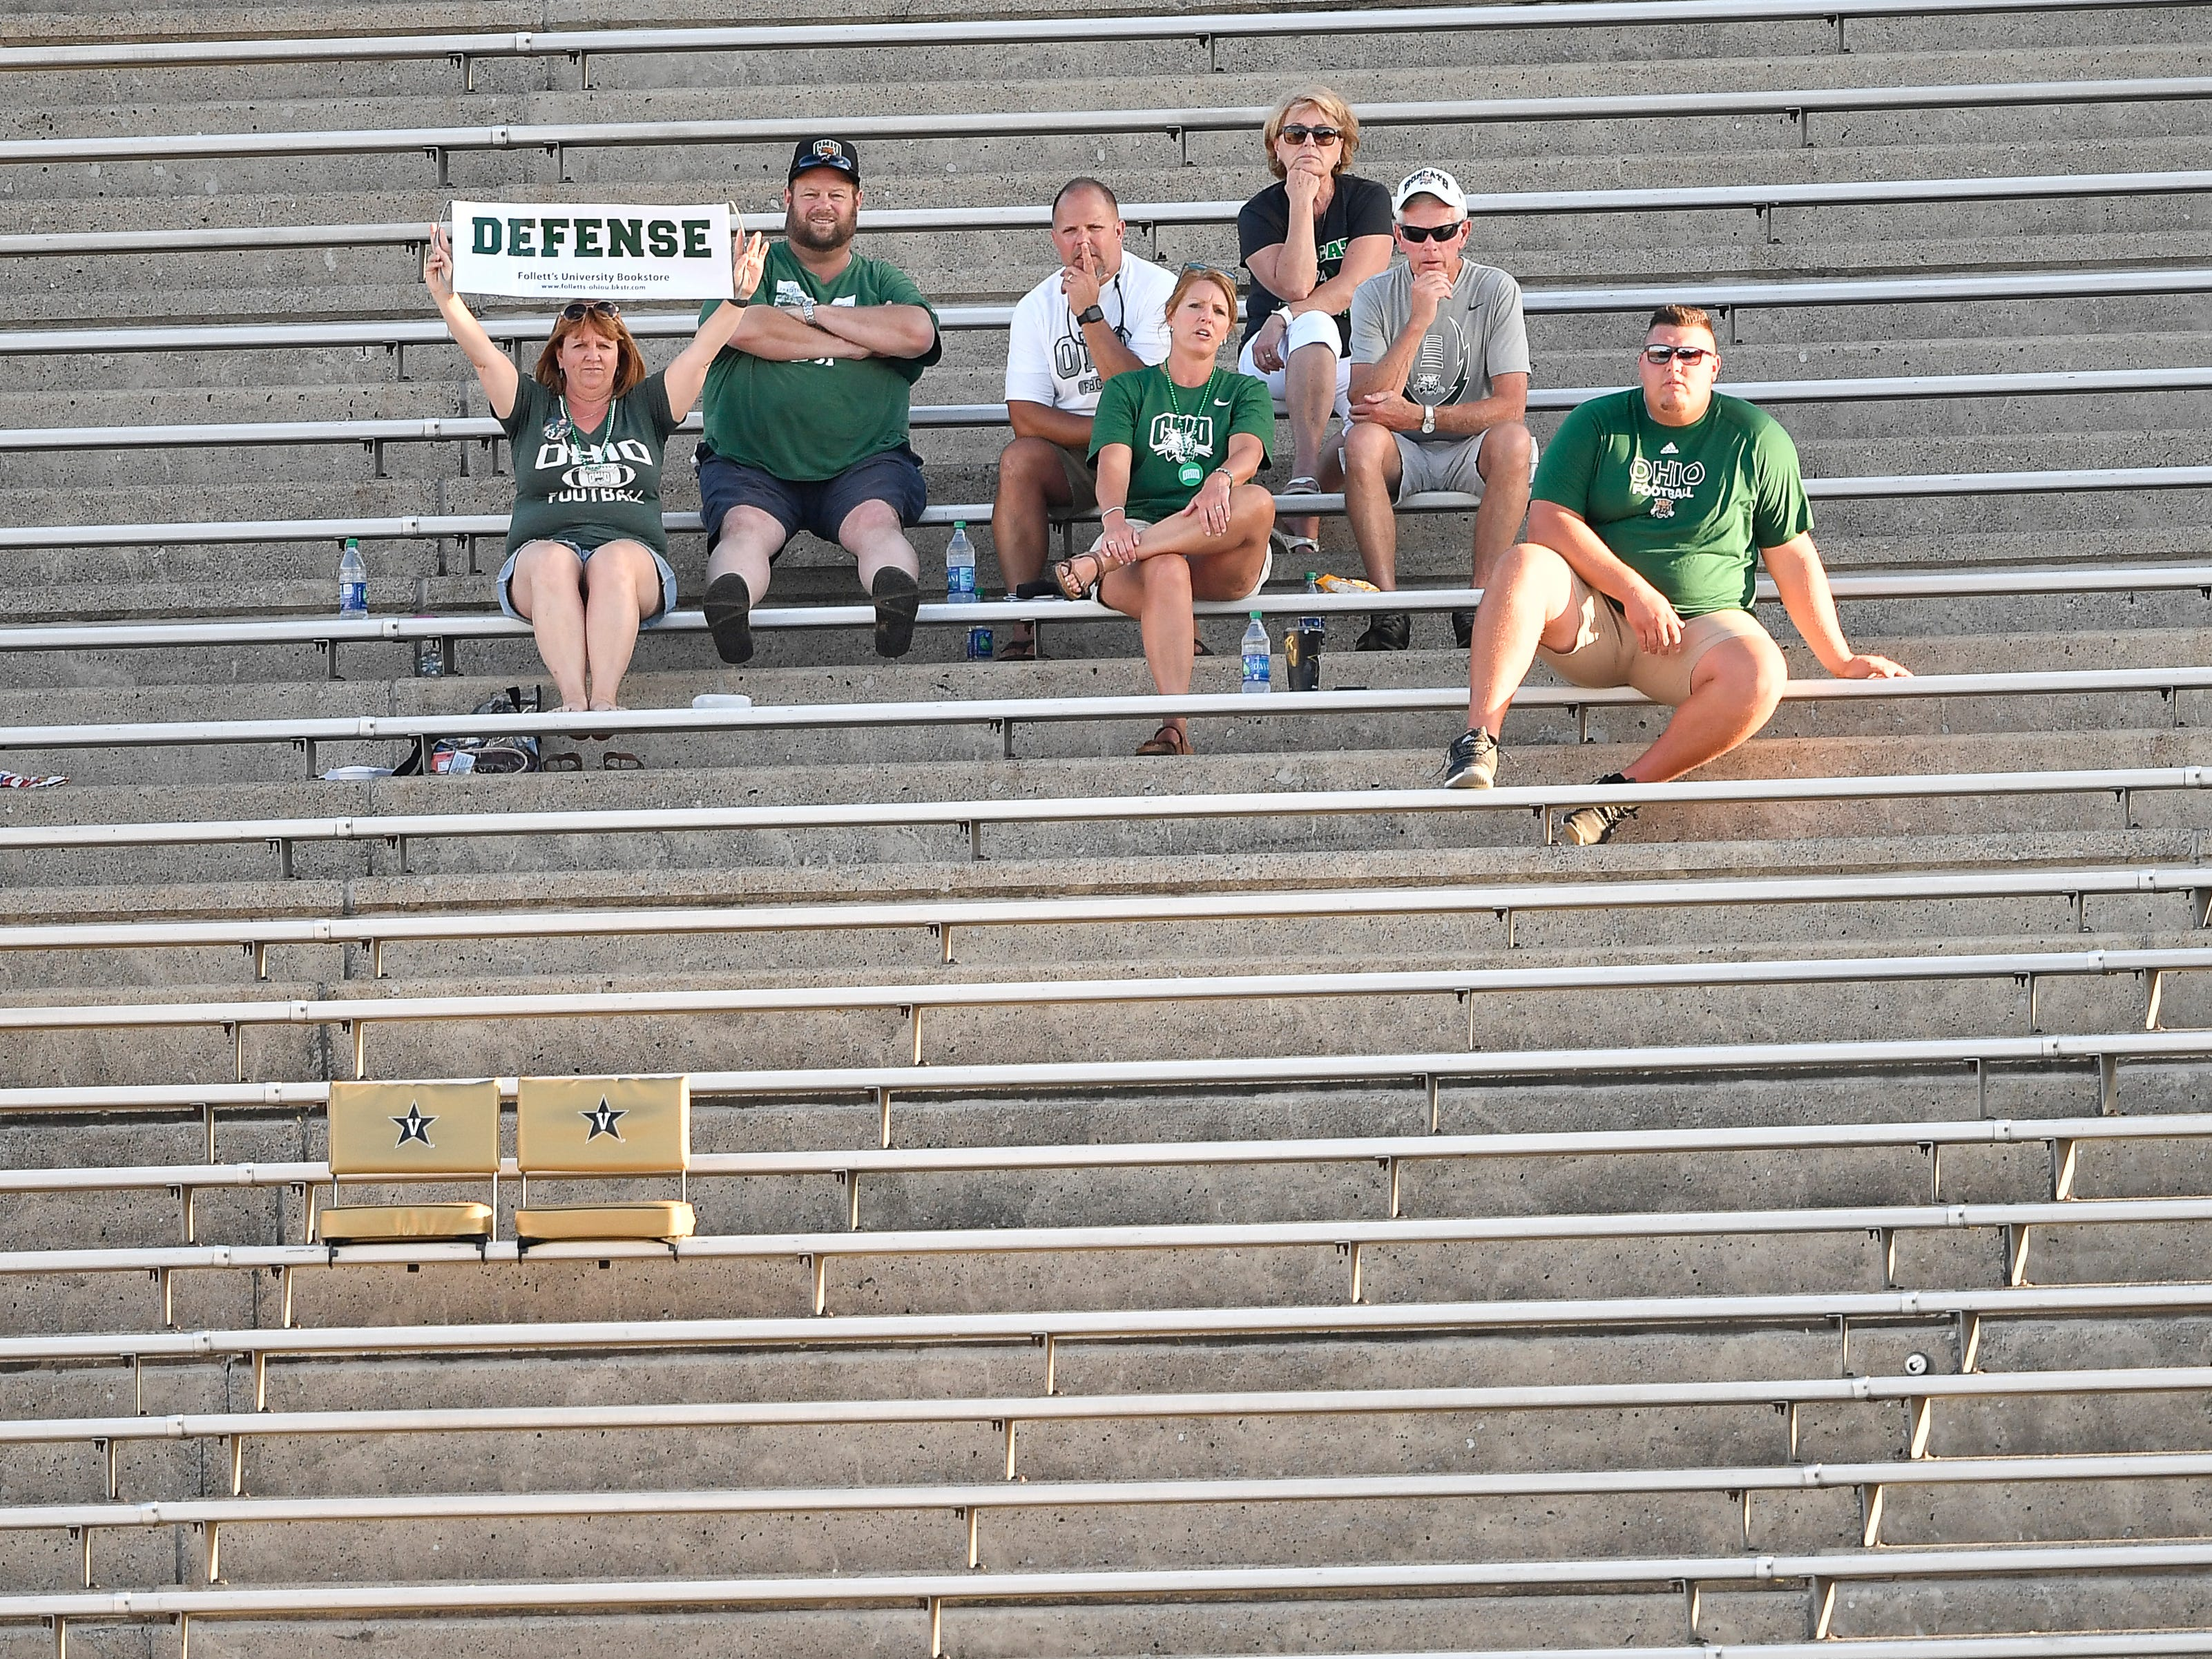 Ohio fans cheer for their Bobcats as they play against Virginia Saturday, Sept. 15, 2018, in Nashville, Tenn. Their football game was moved from Virginia to Tennessee to avoid the effects of Hurricane Florence.